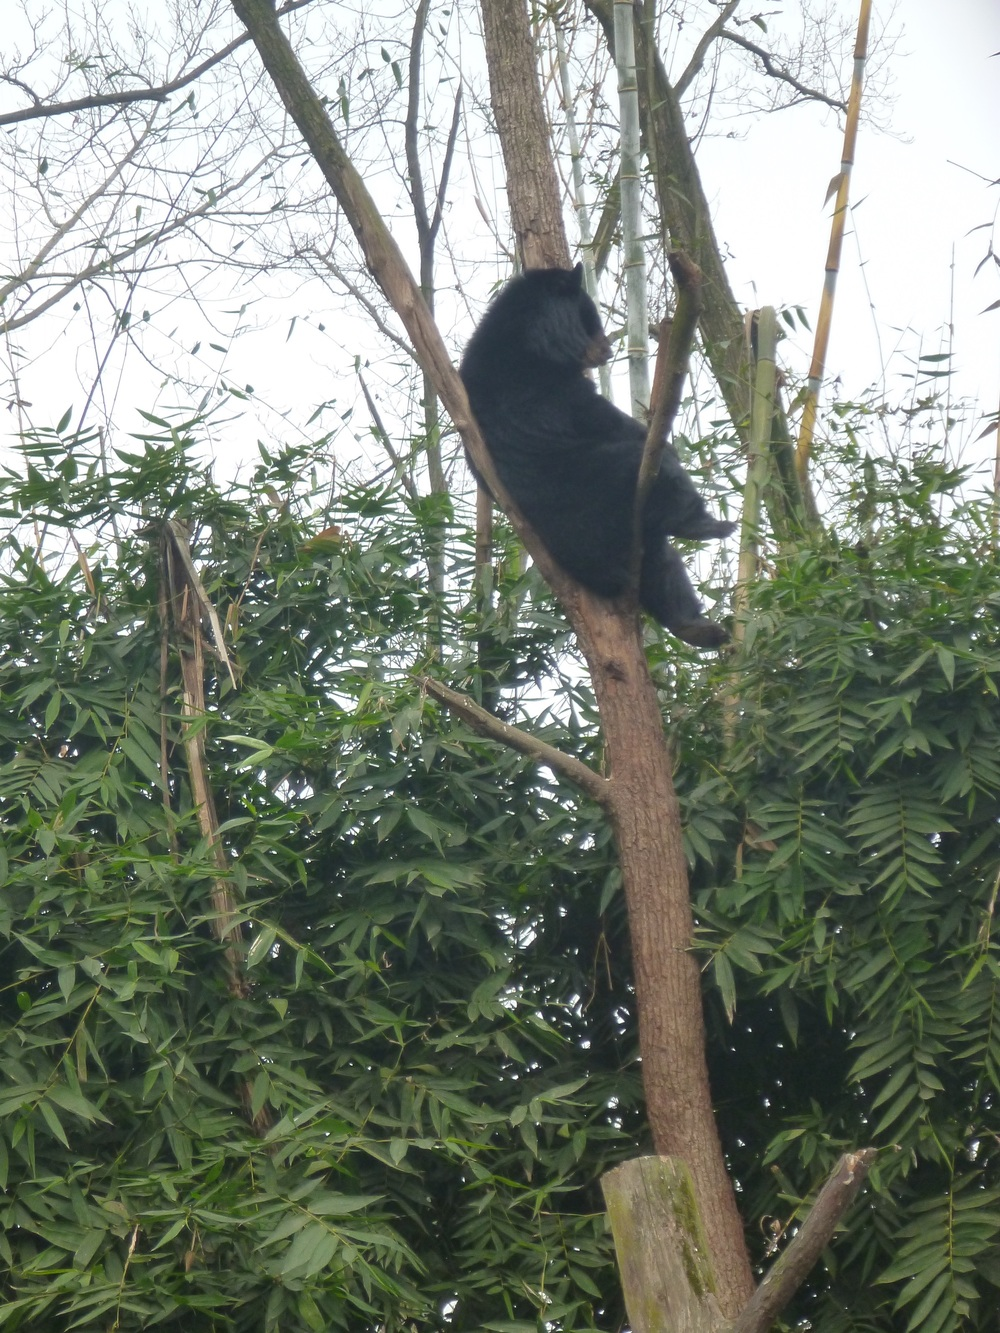 Wang cai loves to hang out in the trees at the centre!